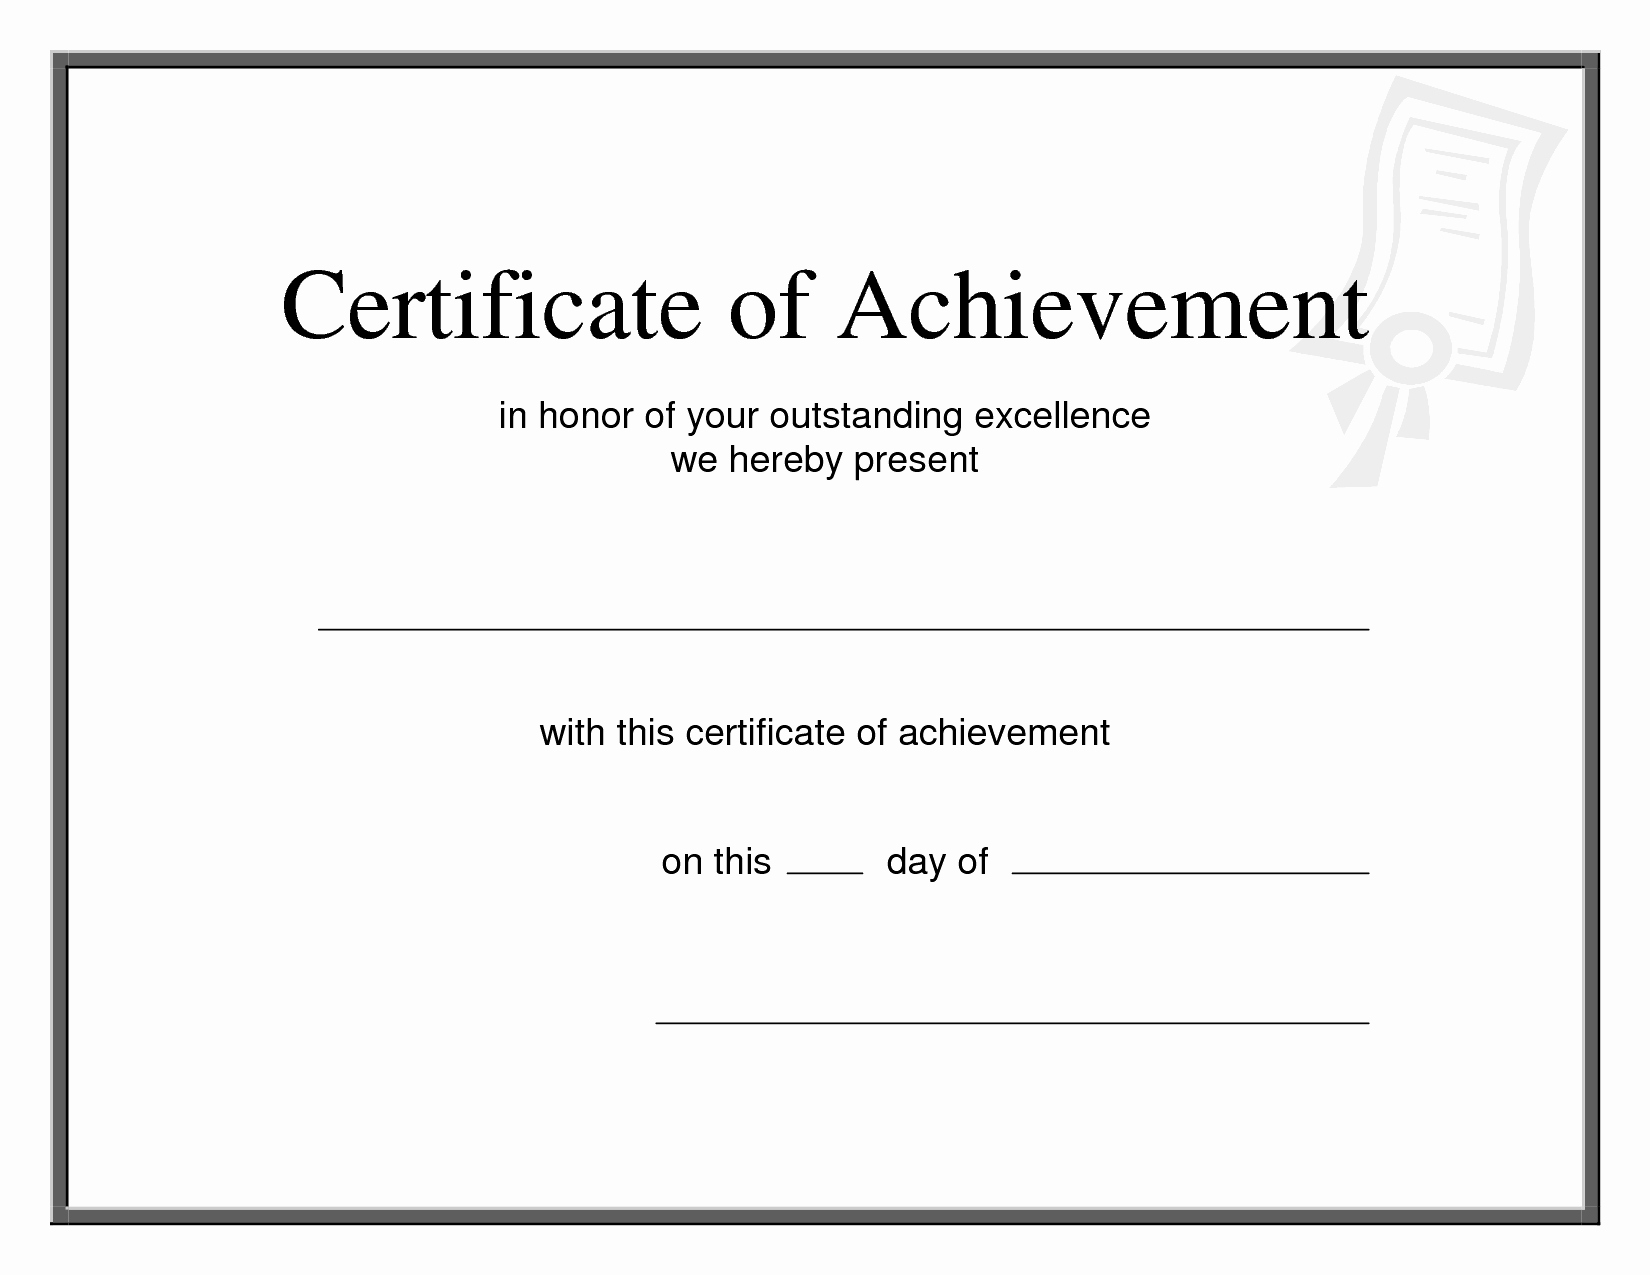 Certificate Of Achievement Free Template New Certificate Achievement Template Word Templates Data